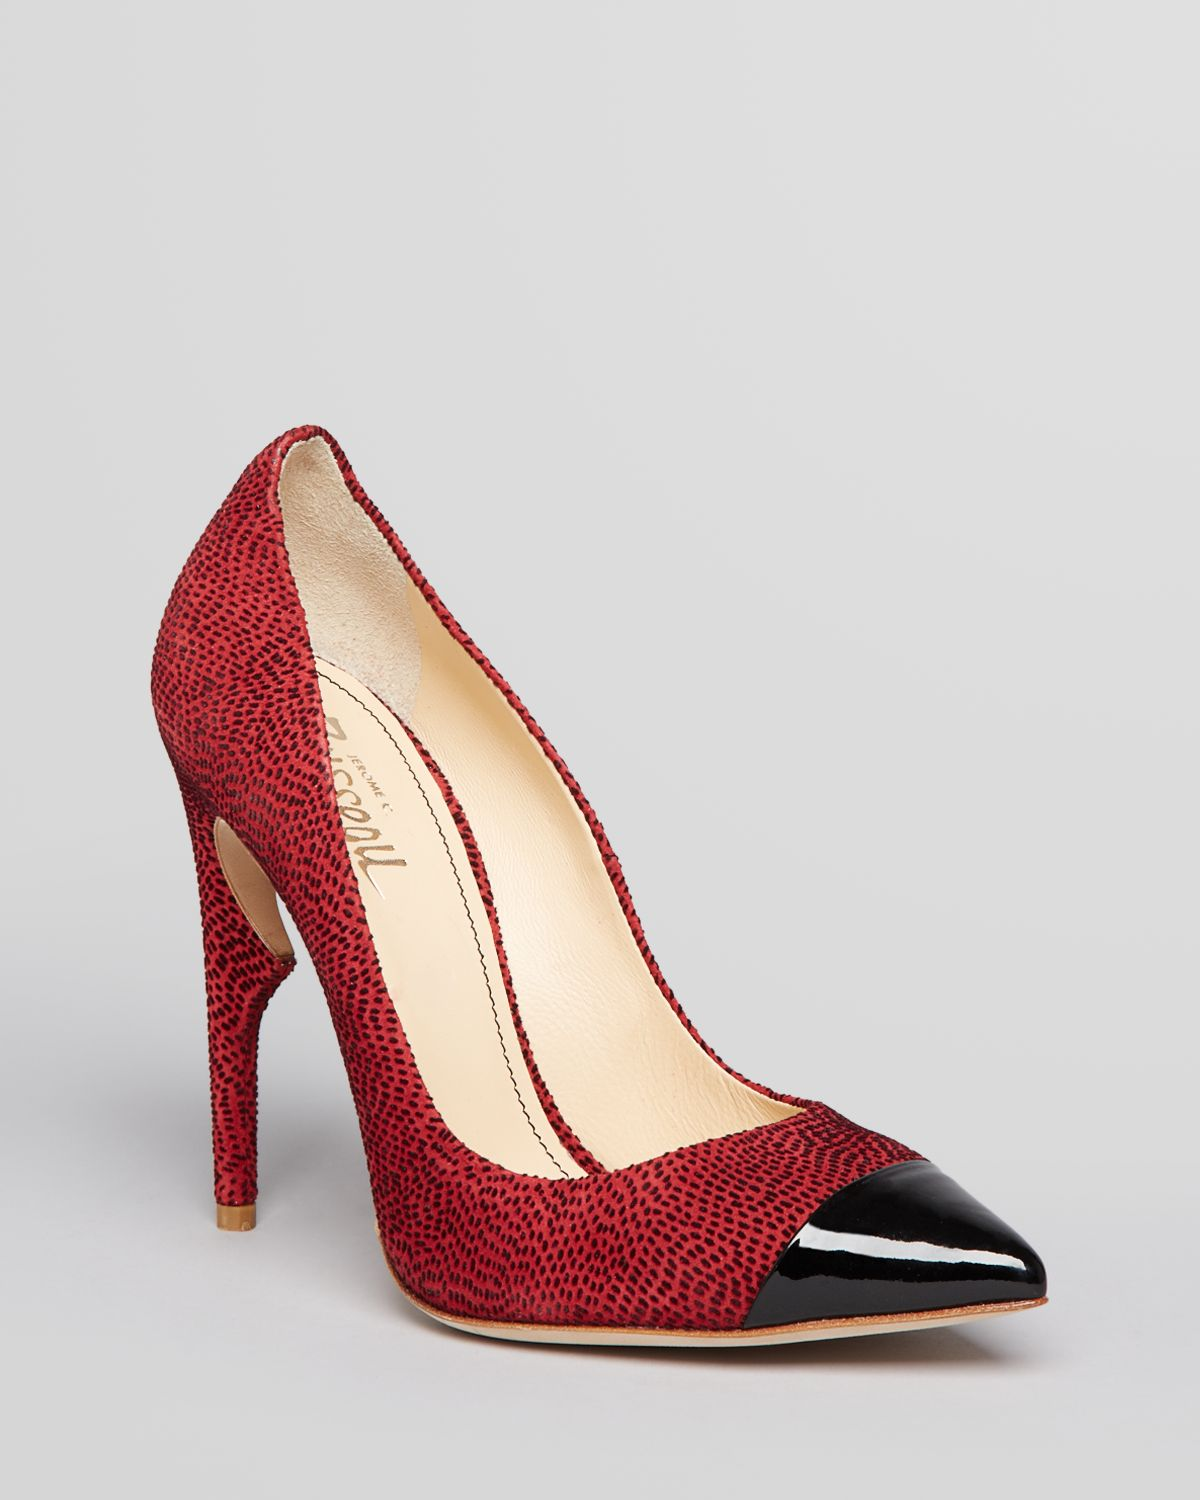 Lyst - Jerome C. Rousseau Pointed Toe Cap Toe Pump Flicker Thorn ...